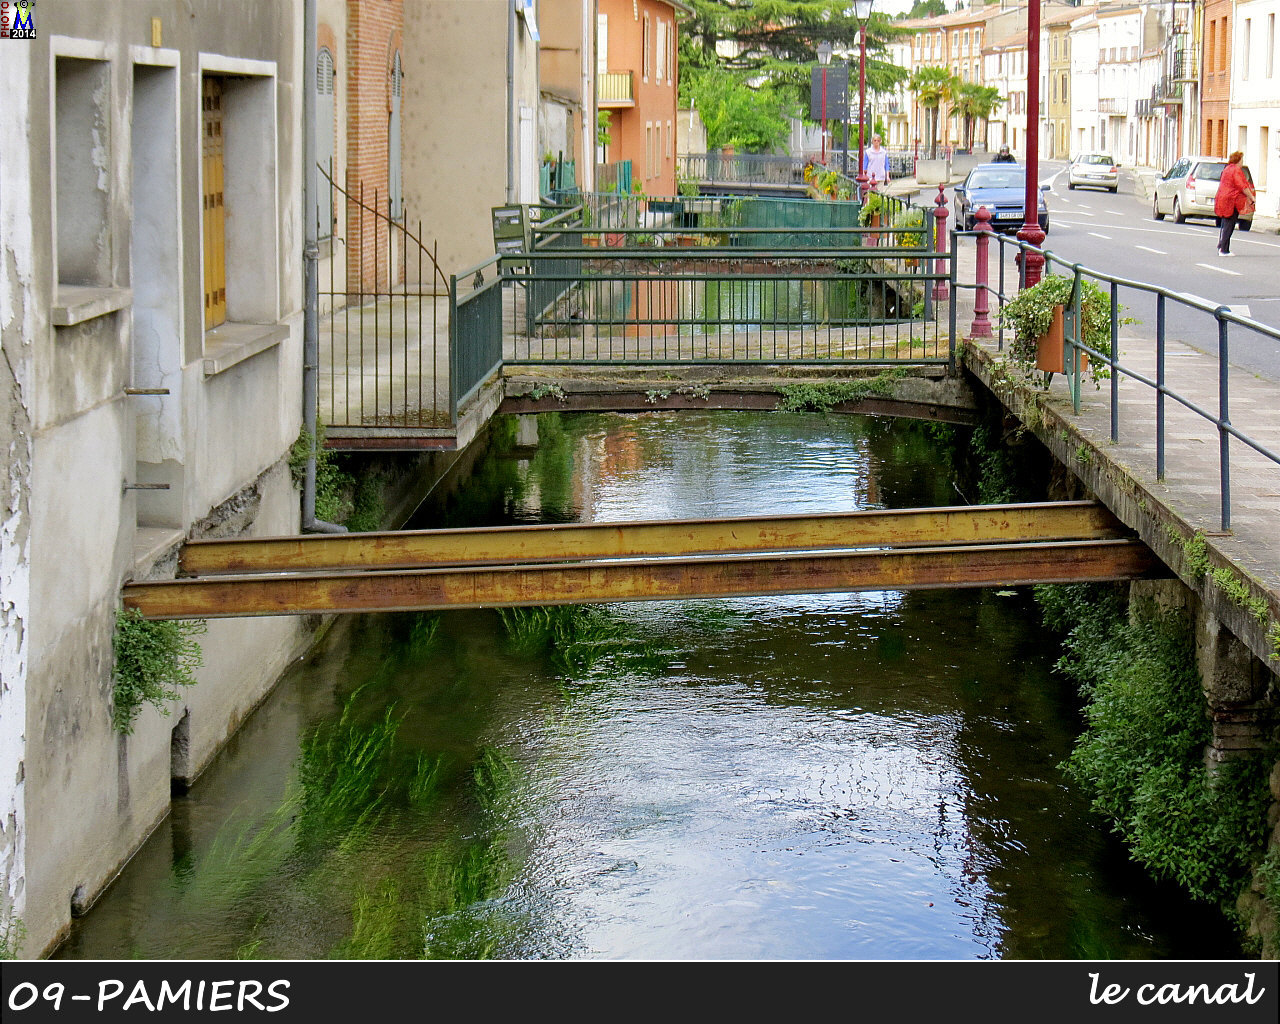 09PAMIERS_canal_100.jpg